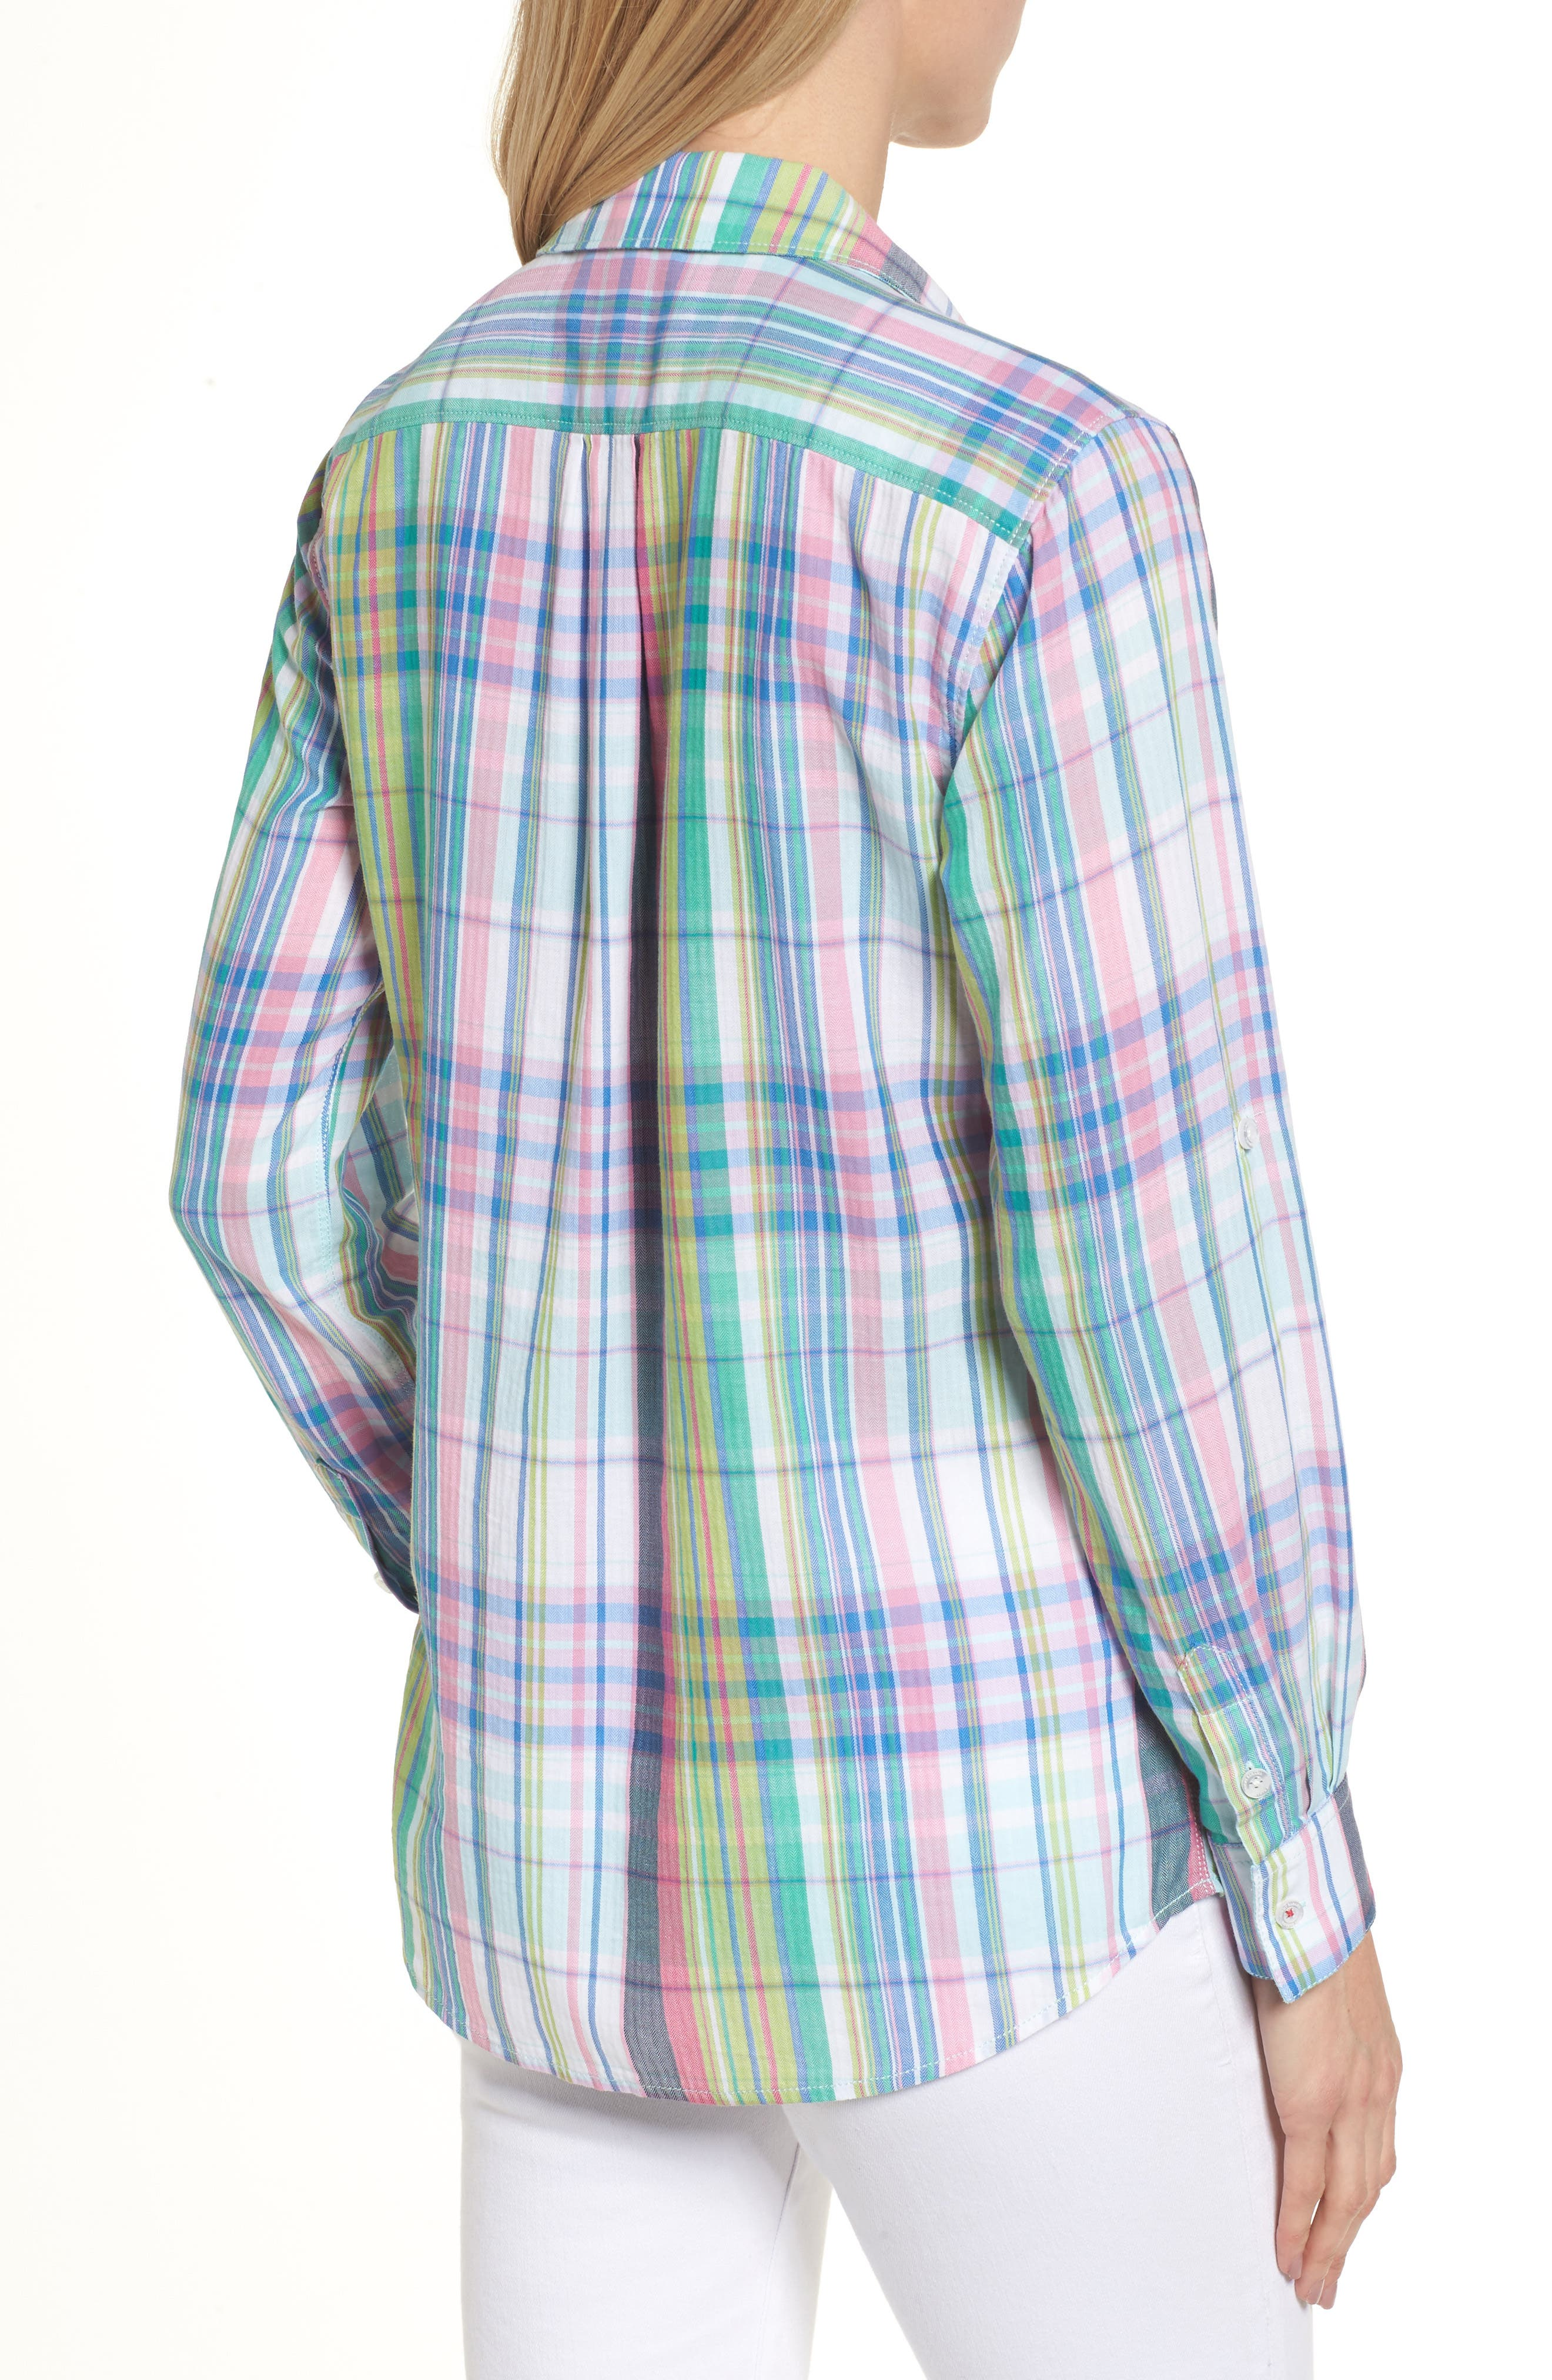 Muffy Madras Button-Up Top,                             Alternate thumbnail 2, color,                             650